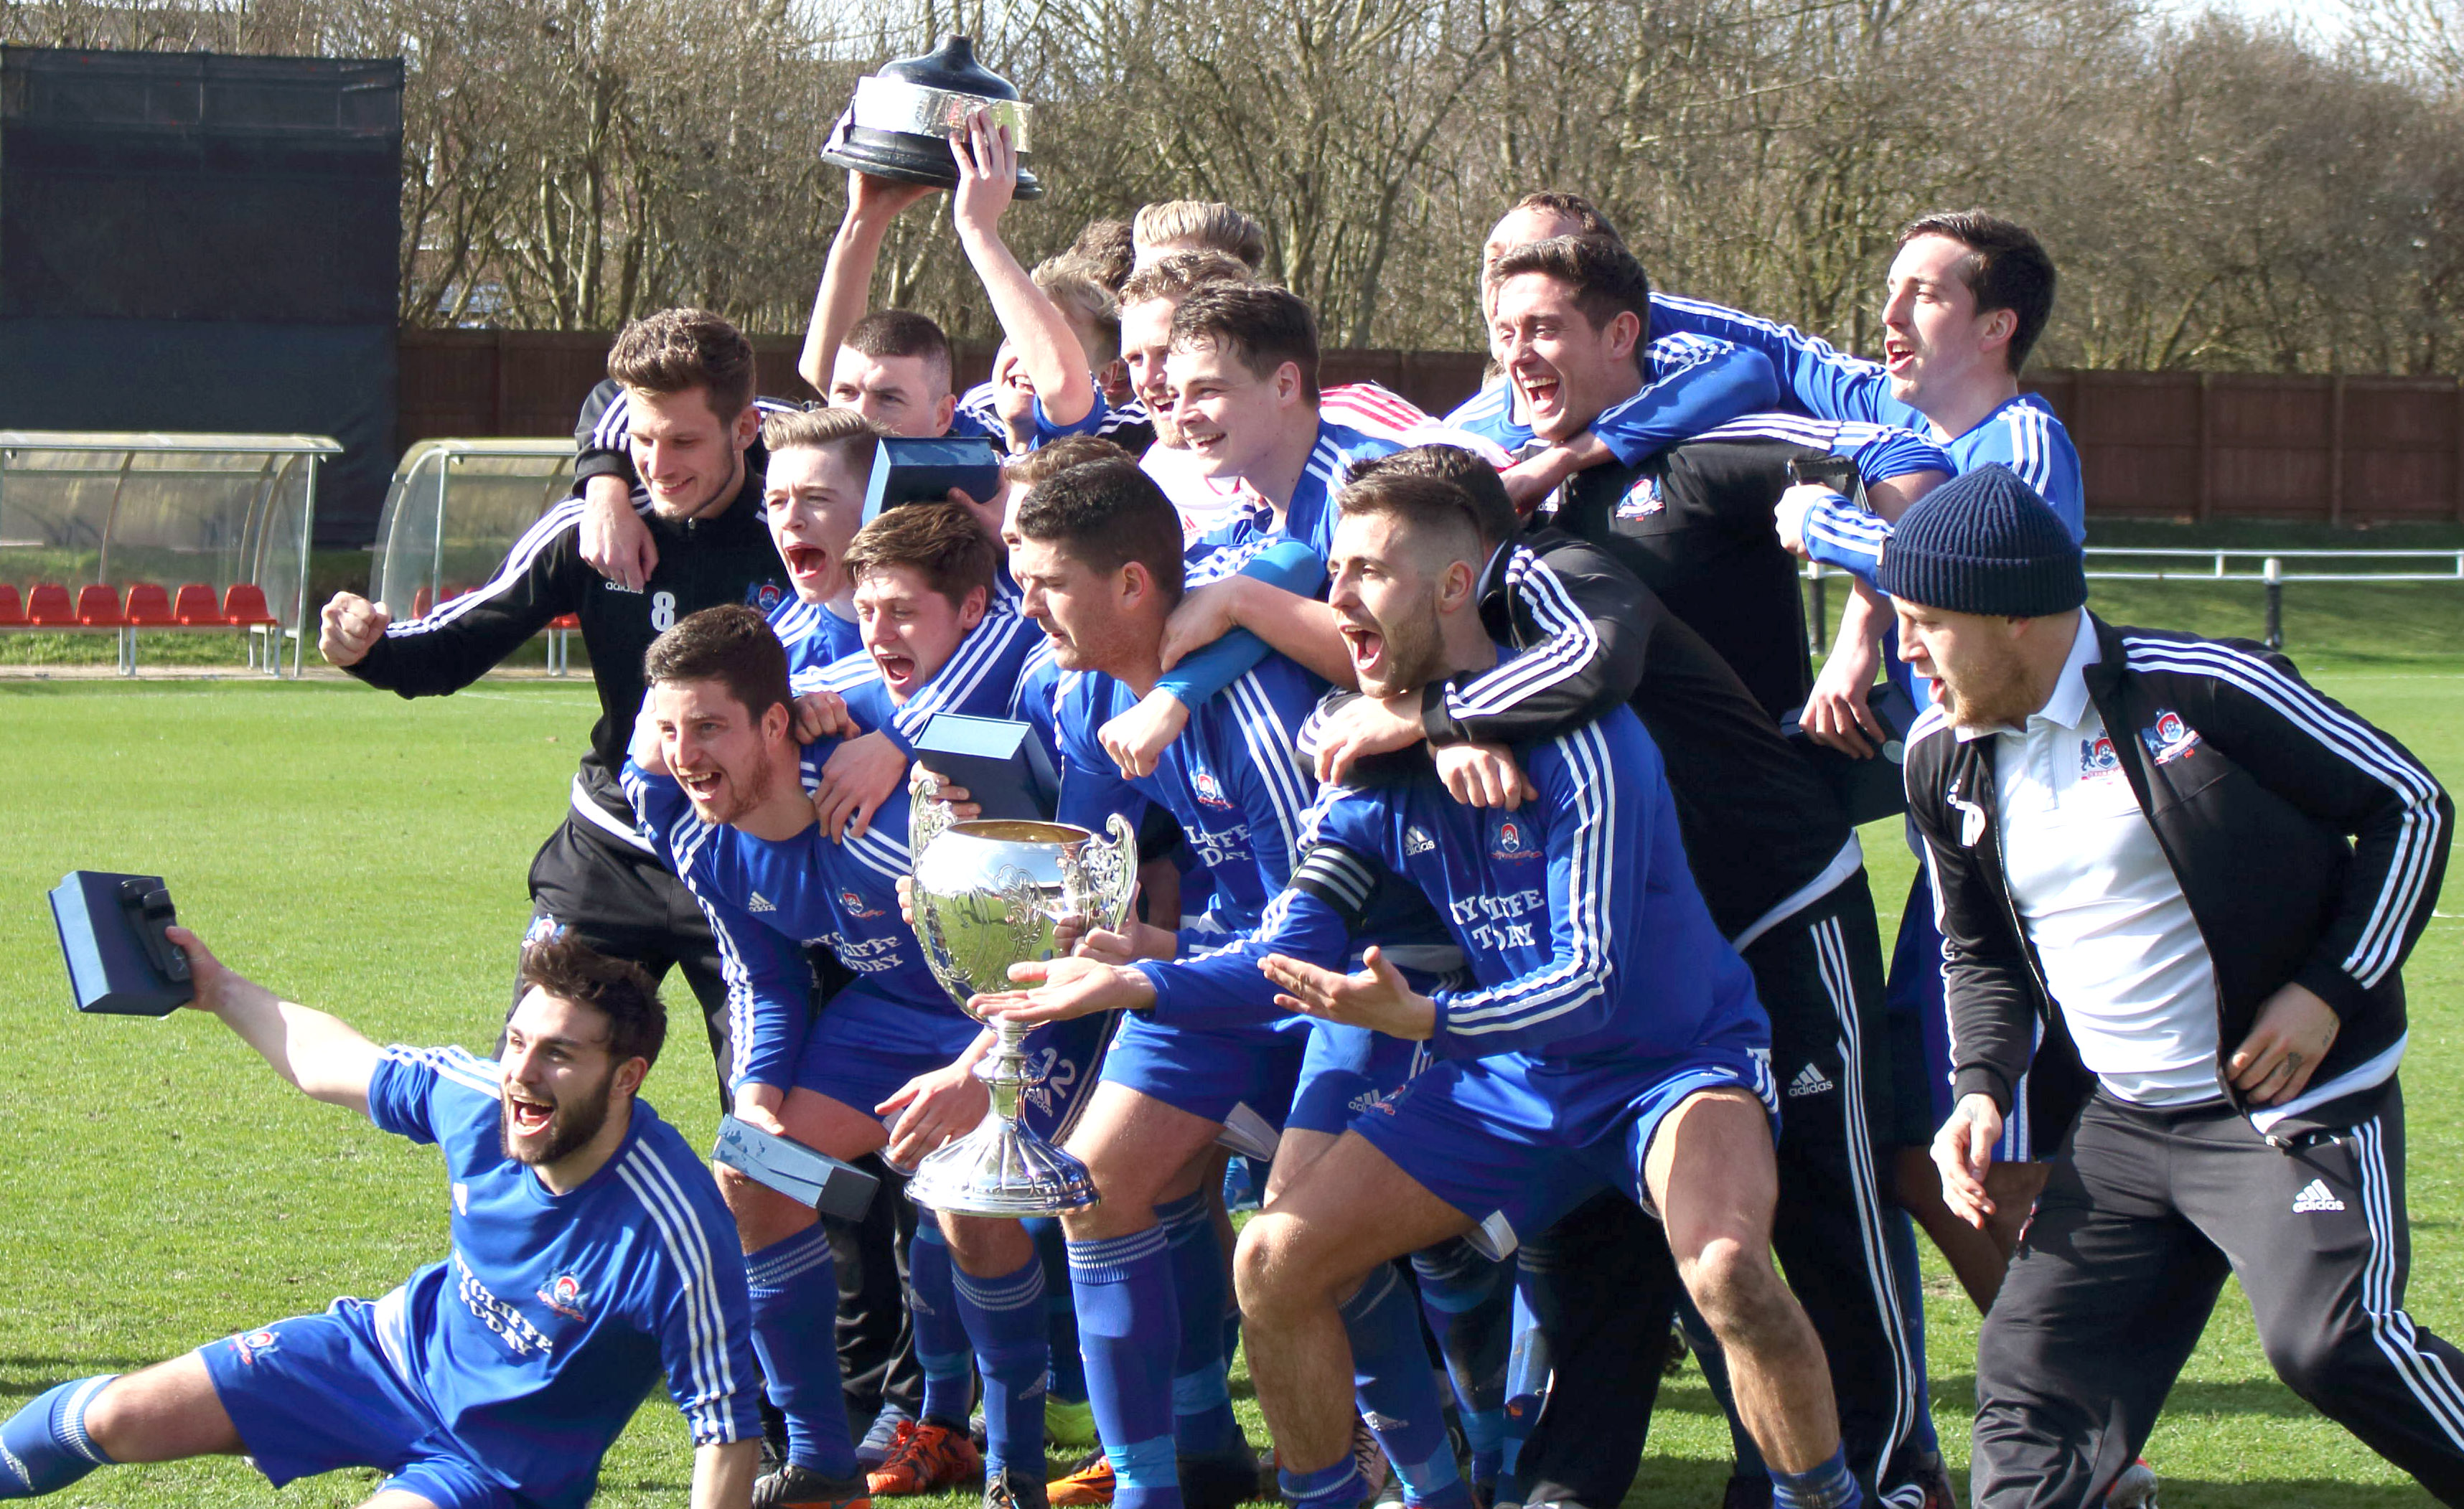 Delight as Aycliffe F.C. Win Durham Challenge Cup